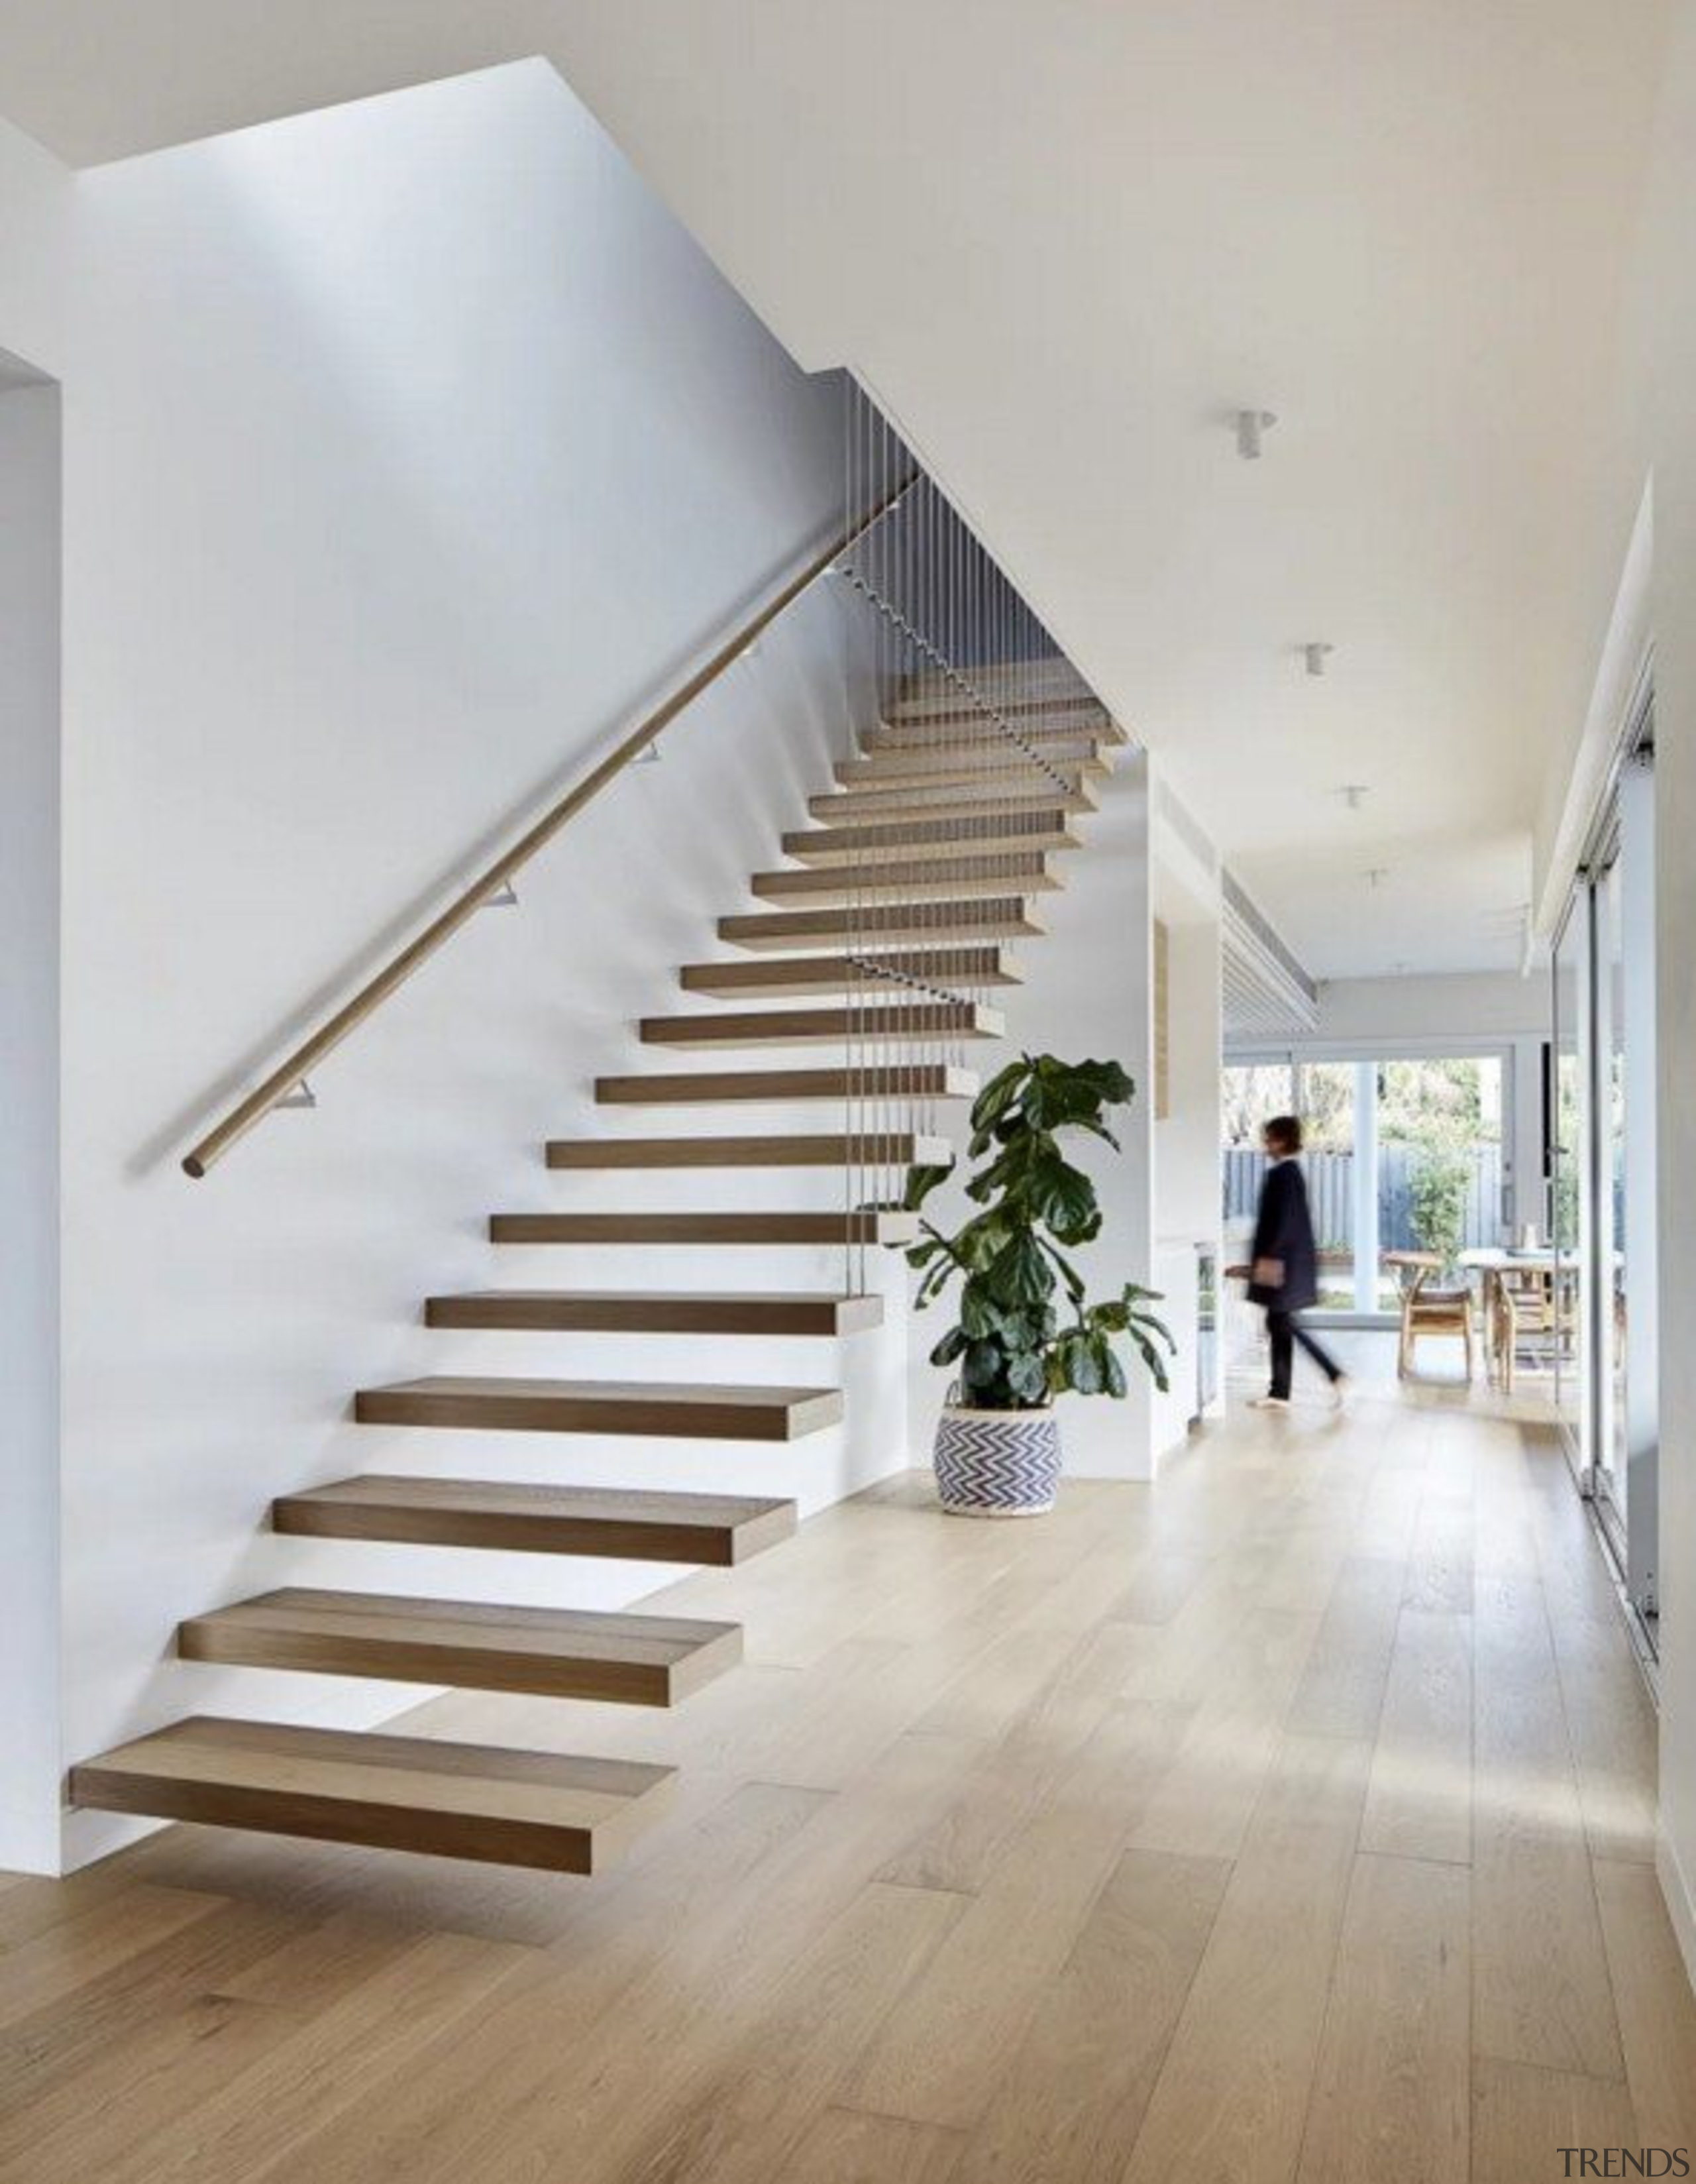 See the home architecture, daylighting, floor, flooring, handrail, hardwood, home, house, interior design, laminate flooring, real estate, stairs, wood, wood flooring, gray, white